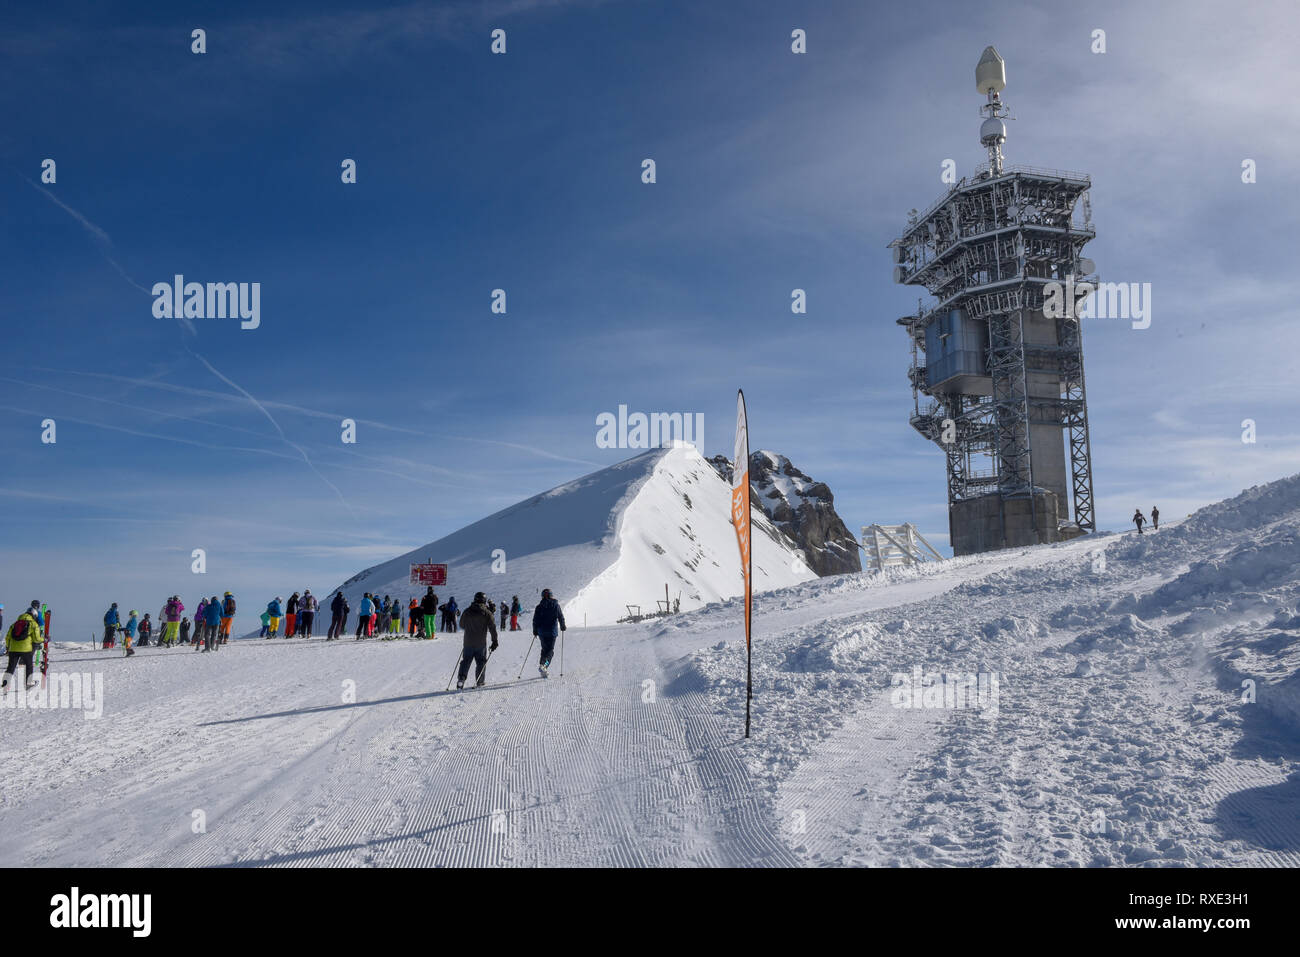 Engelberg, Switzerland - 3 March 2019: people getting ready to go skiing on mount Titlis over Engelberg in the Swiss alps Stock Photo